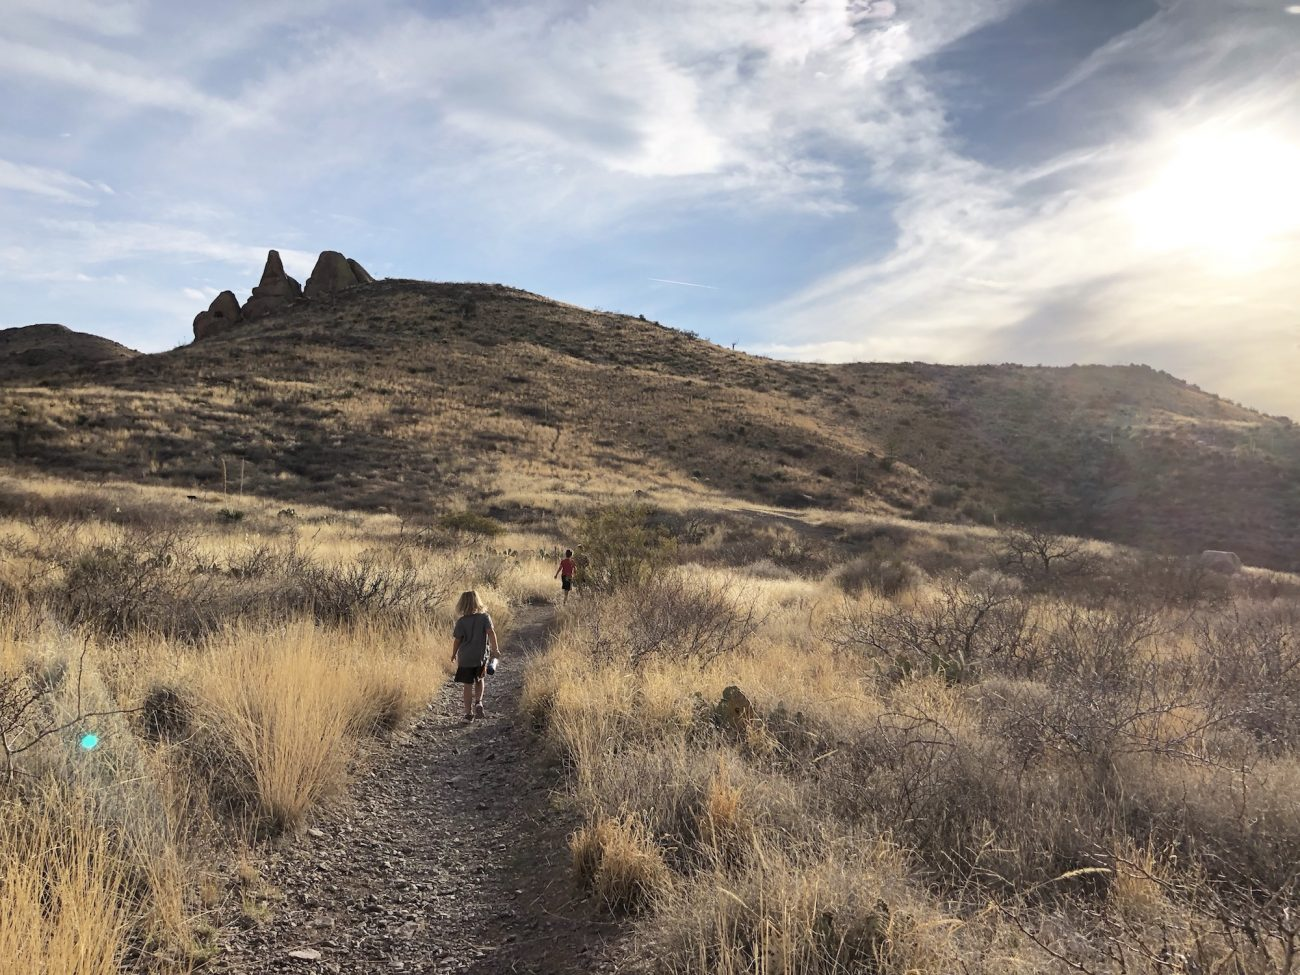 Hiking at Dripping Springs Natural Area